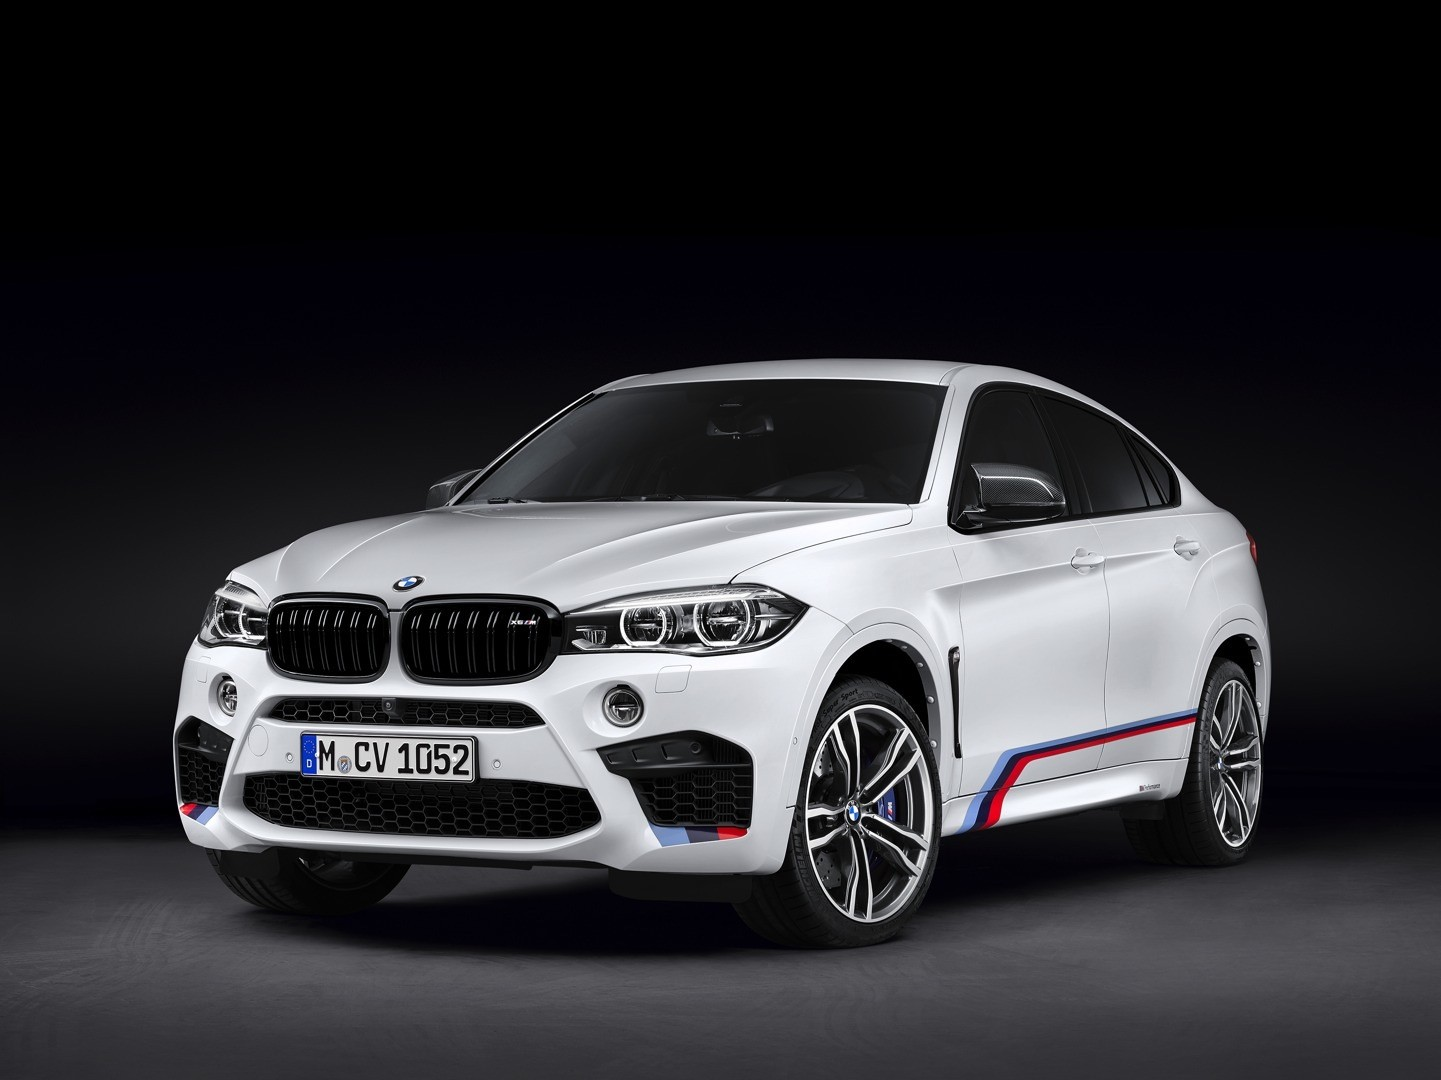 Bmw Unveils M Performance Parts For X5 M And X6 M Models Autoevolution